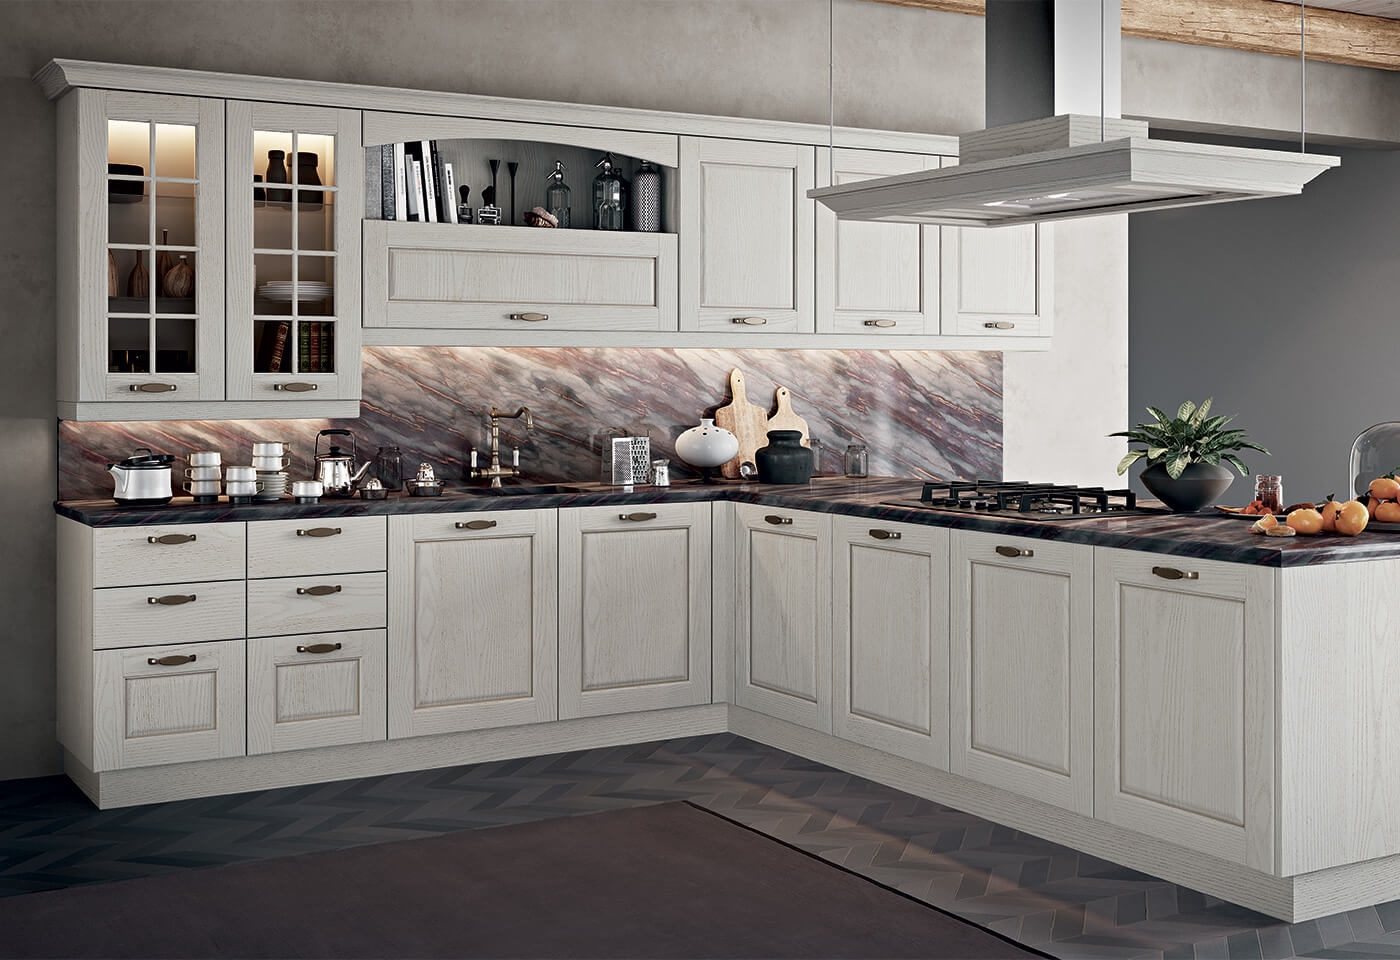 Detail Kitchen 7 - Asolo - Arredo3